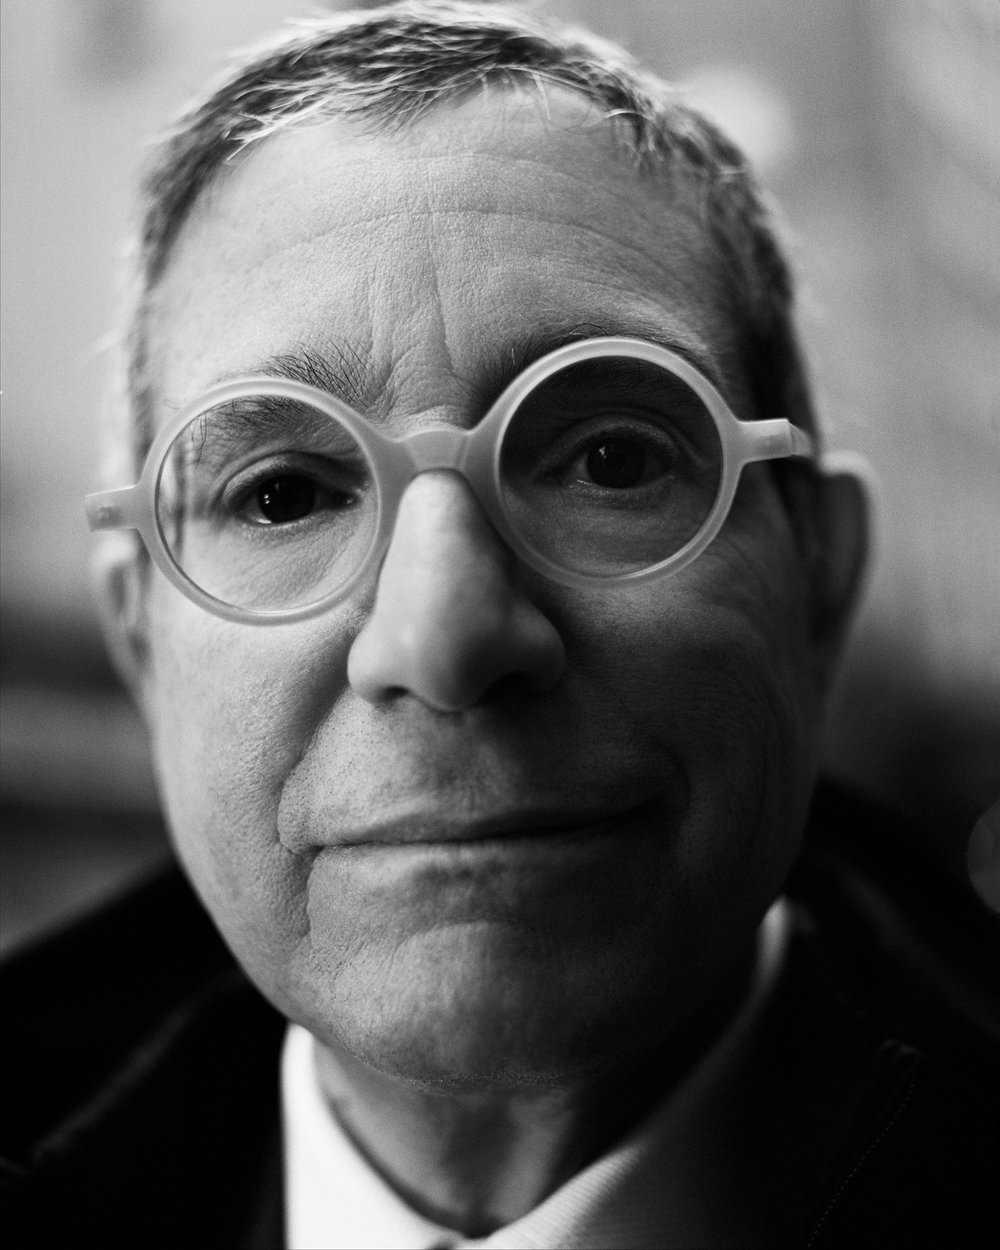 Jeffrey Deitch//Business of Fashion